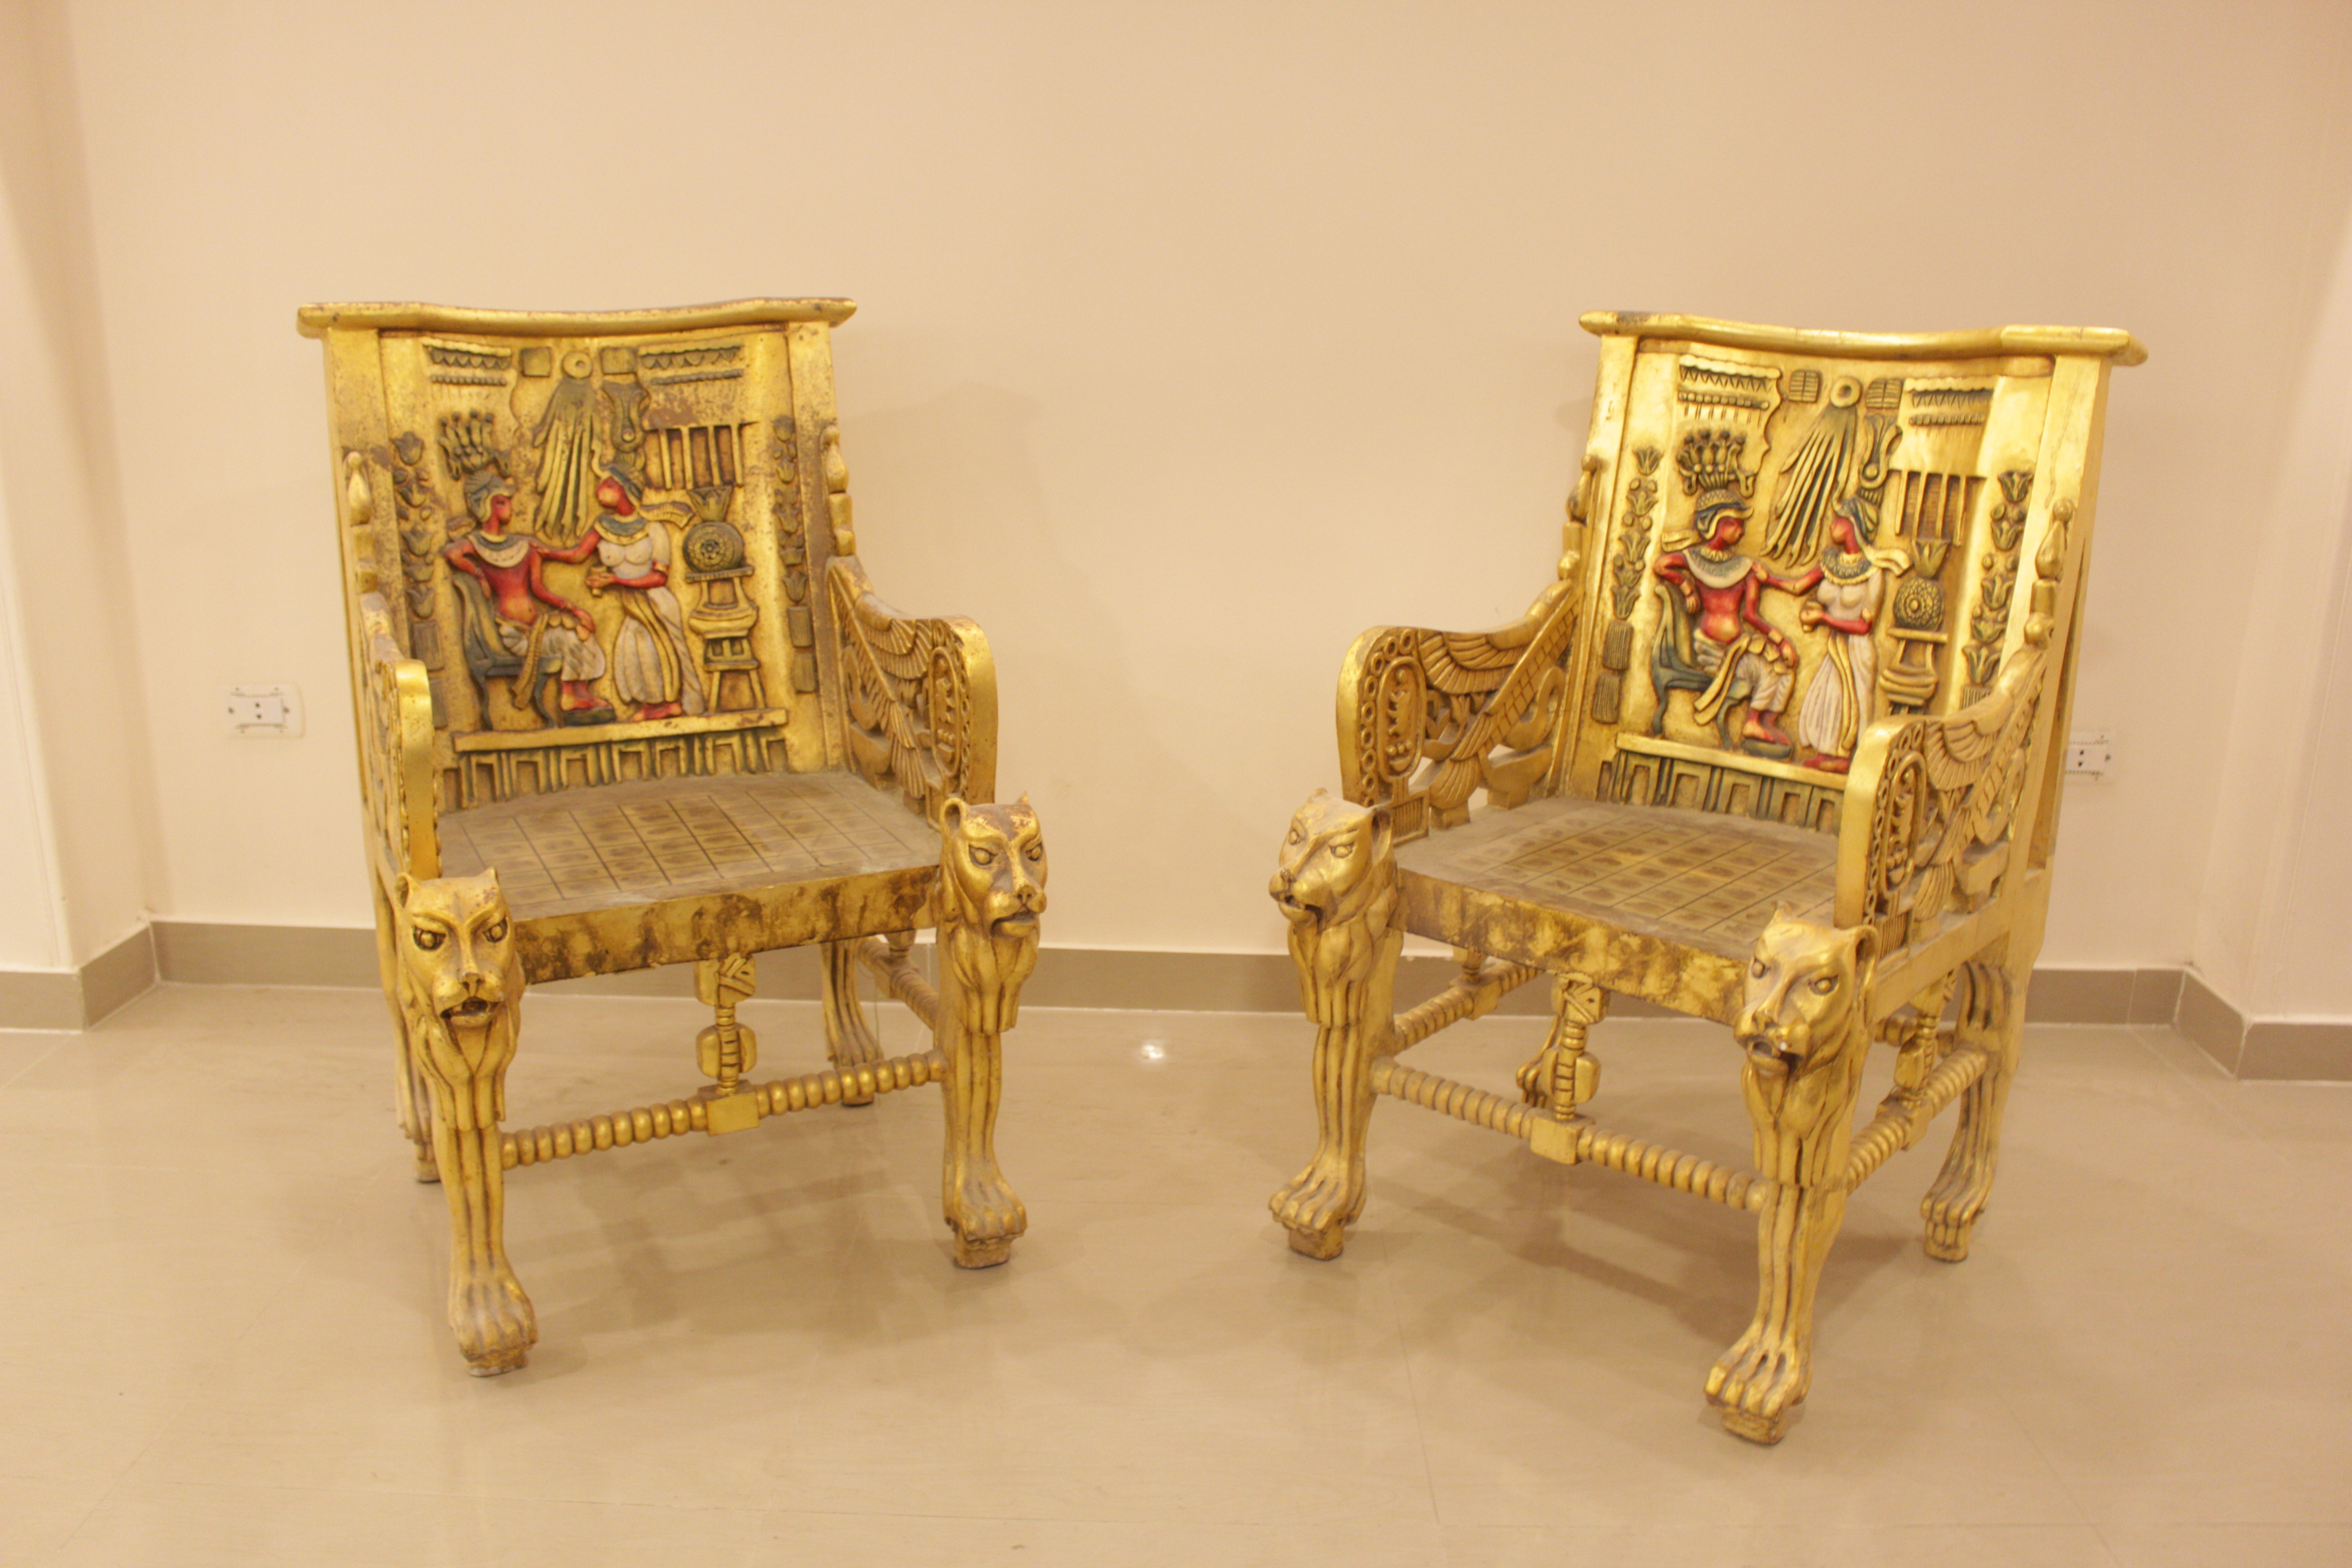 Gilded Empire Pharaonic Chair